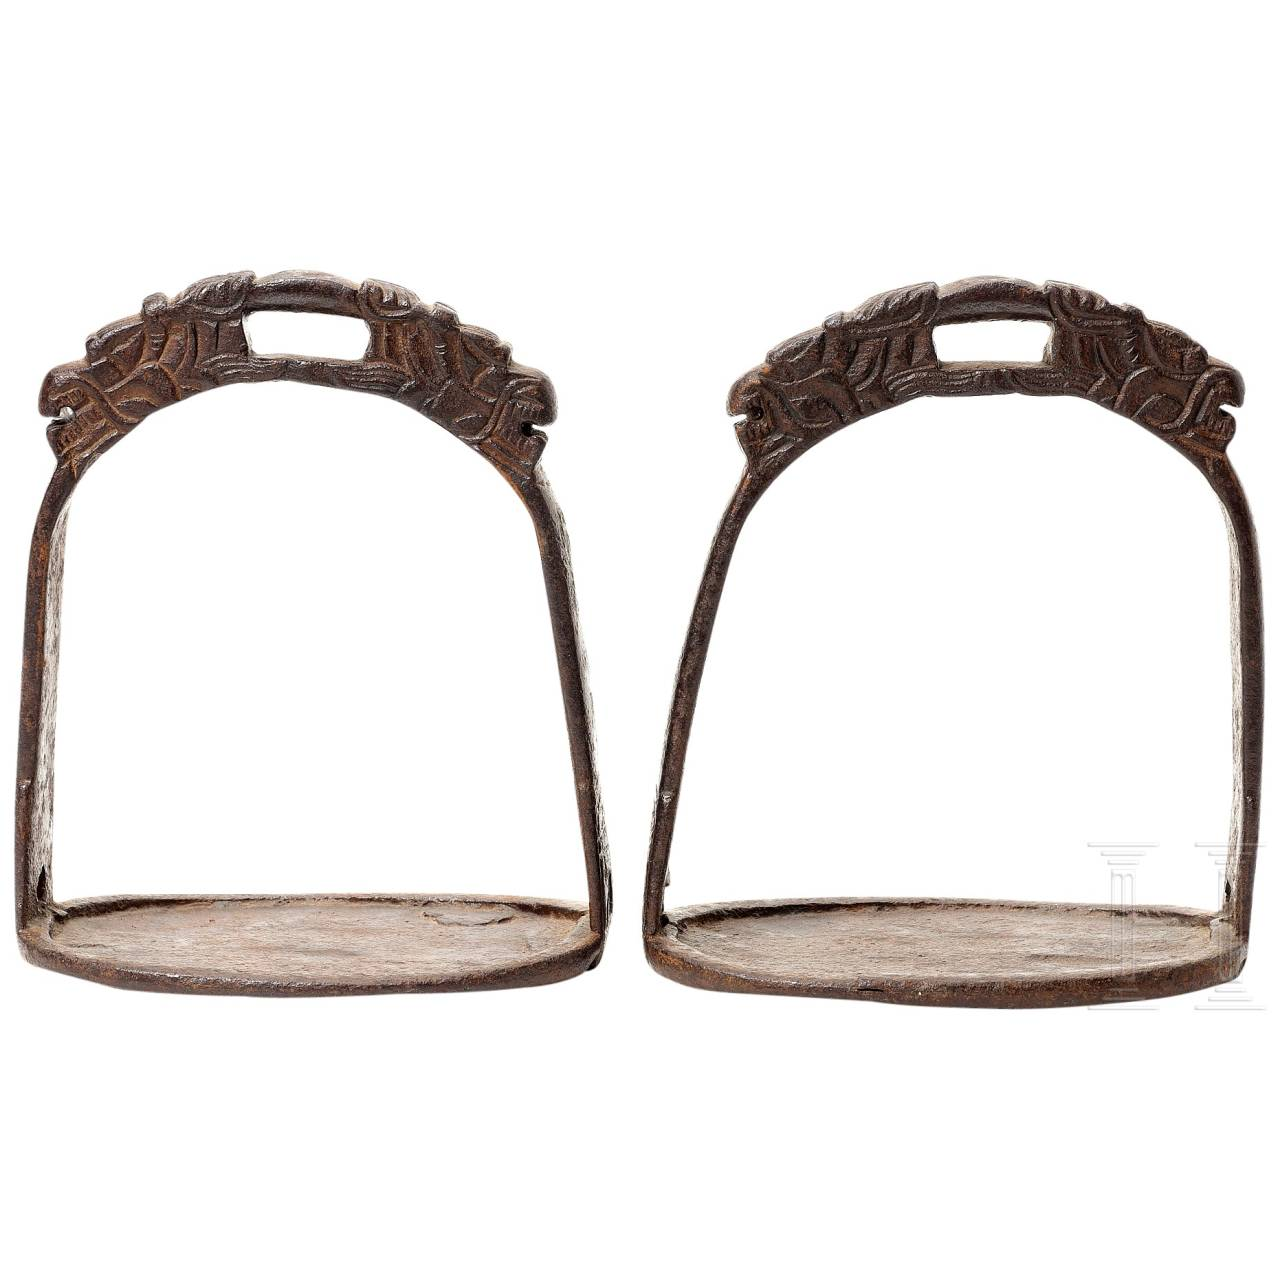 A pair of Chinese iron stirrups, 17th-18th century